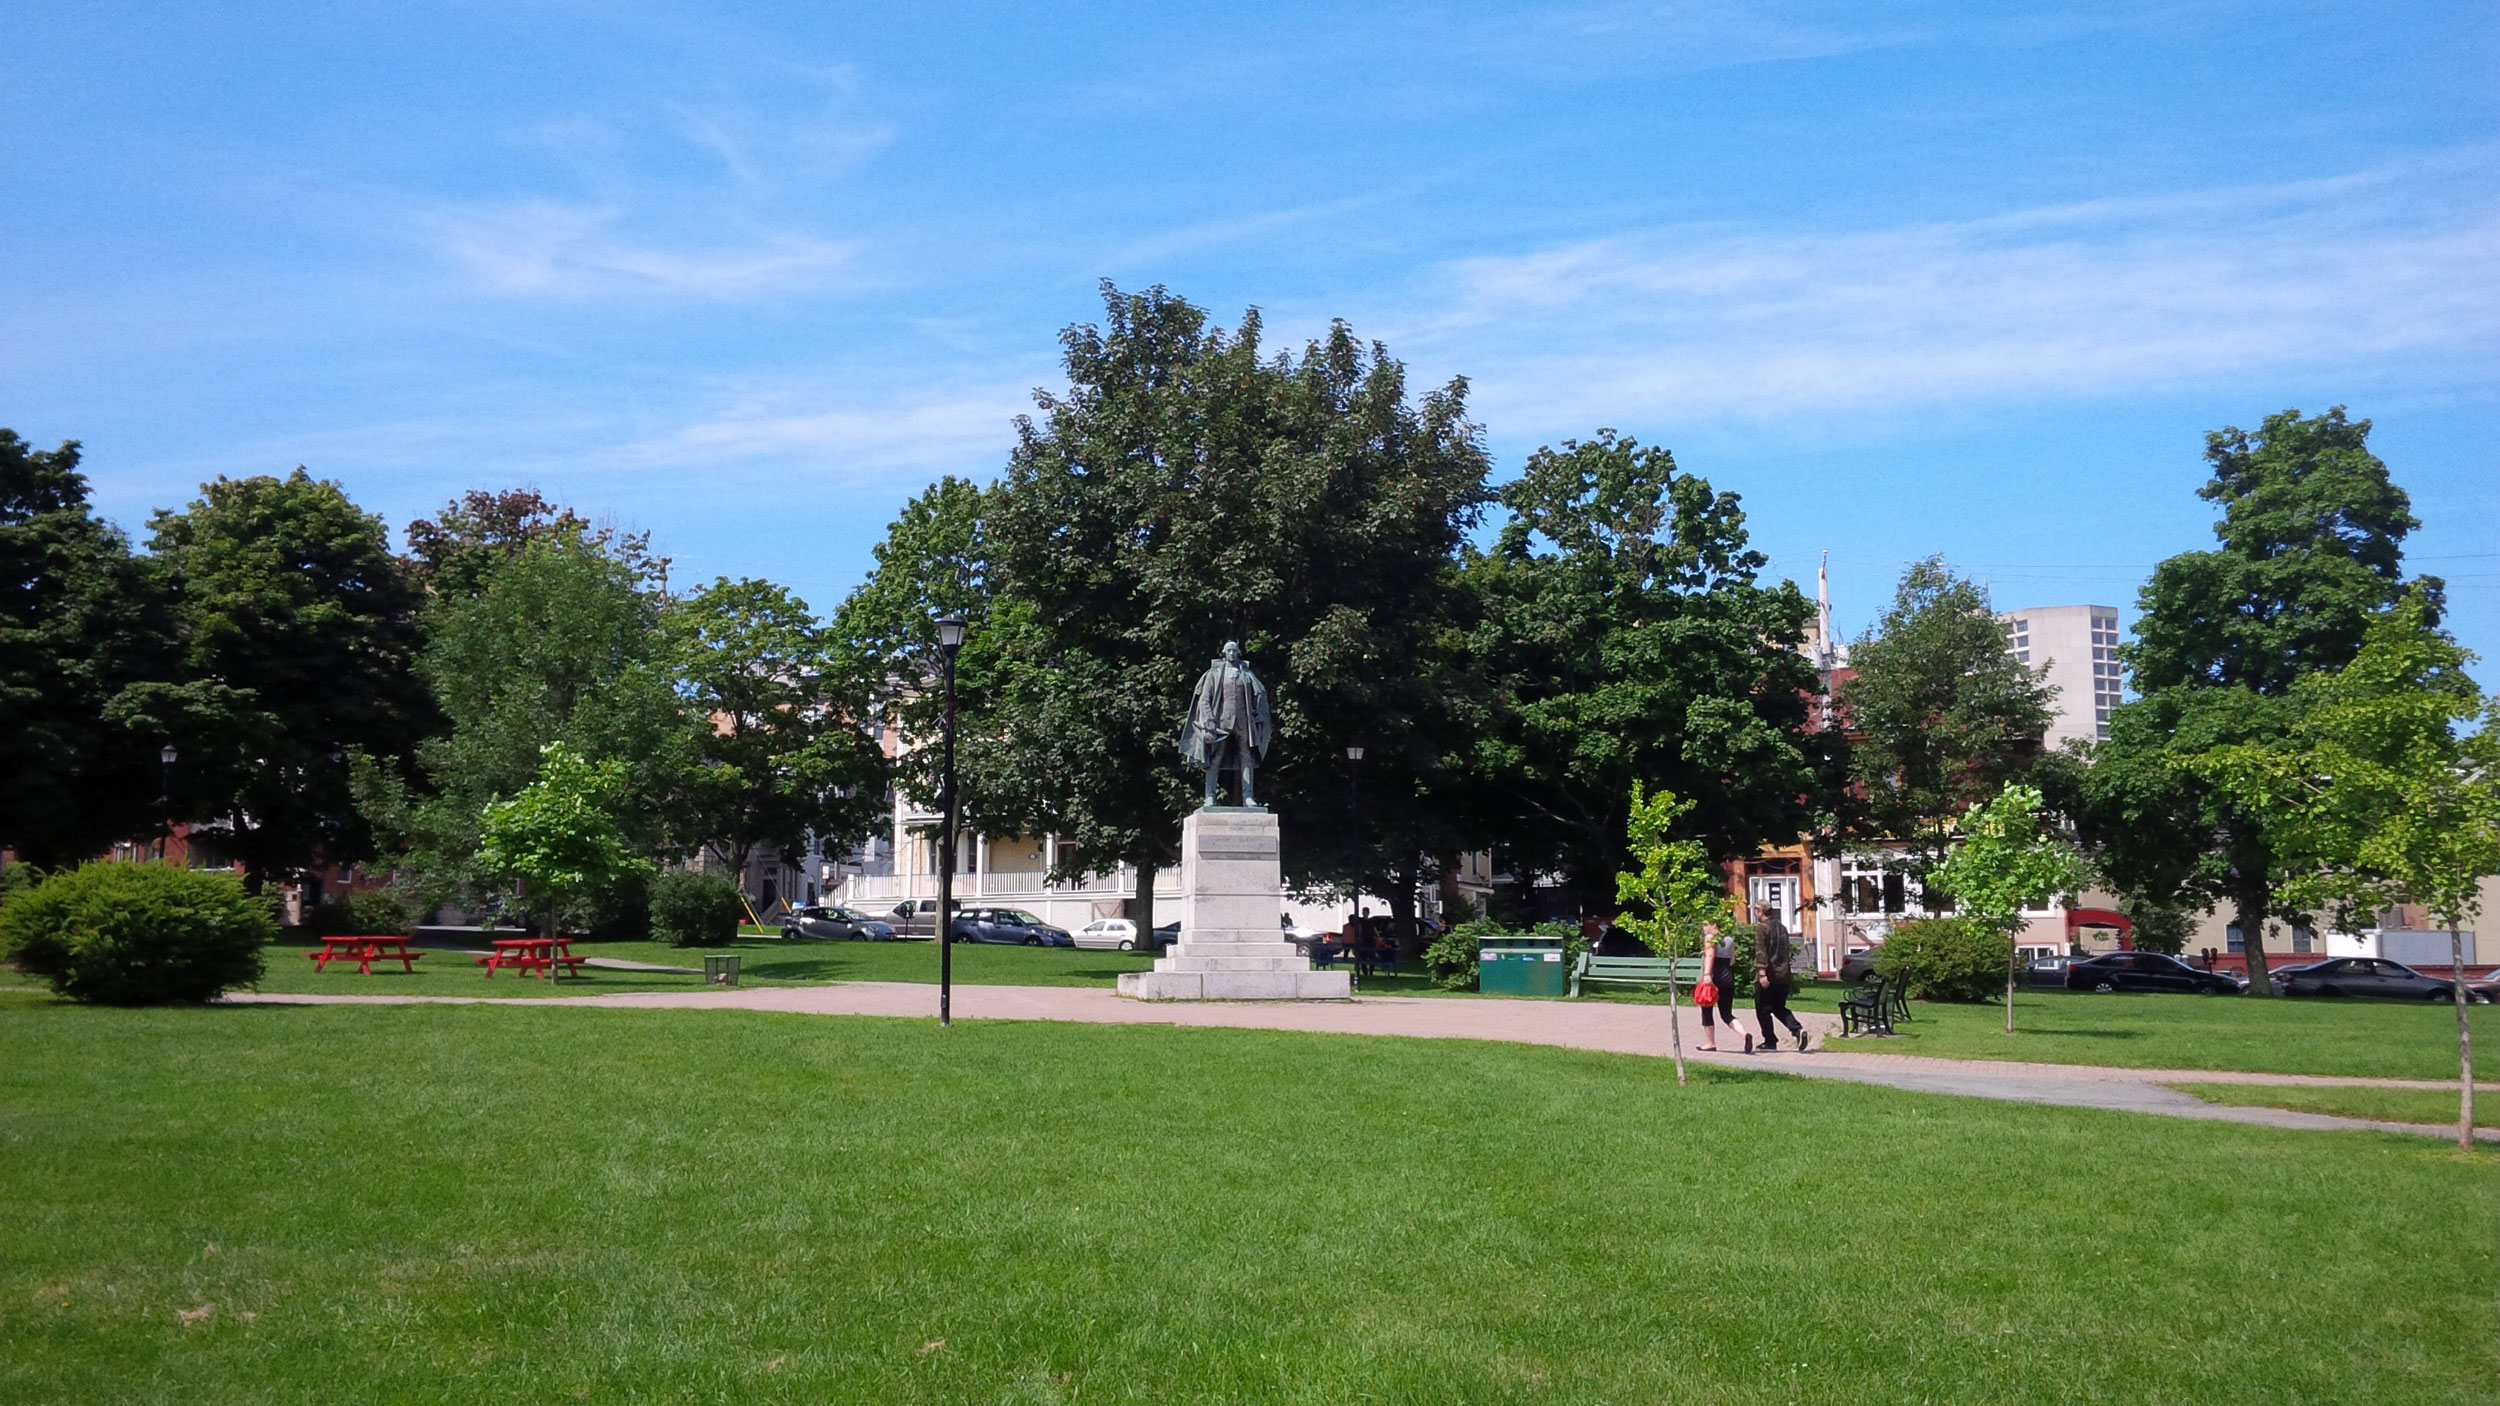 Cornwallis Park And Statue